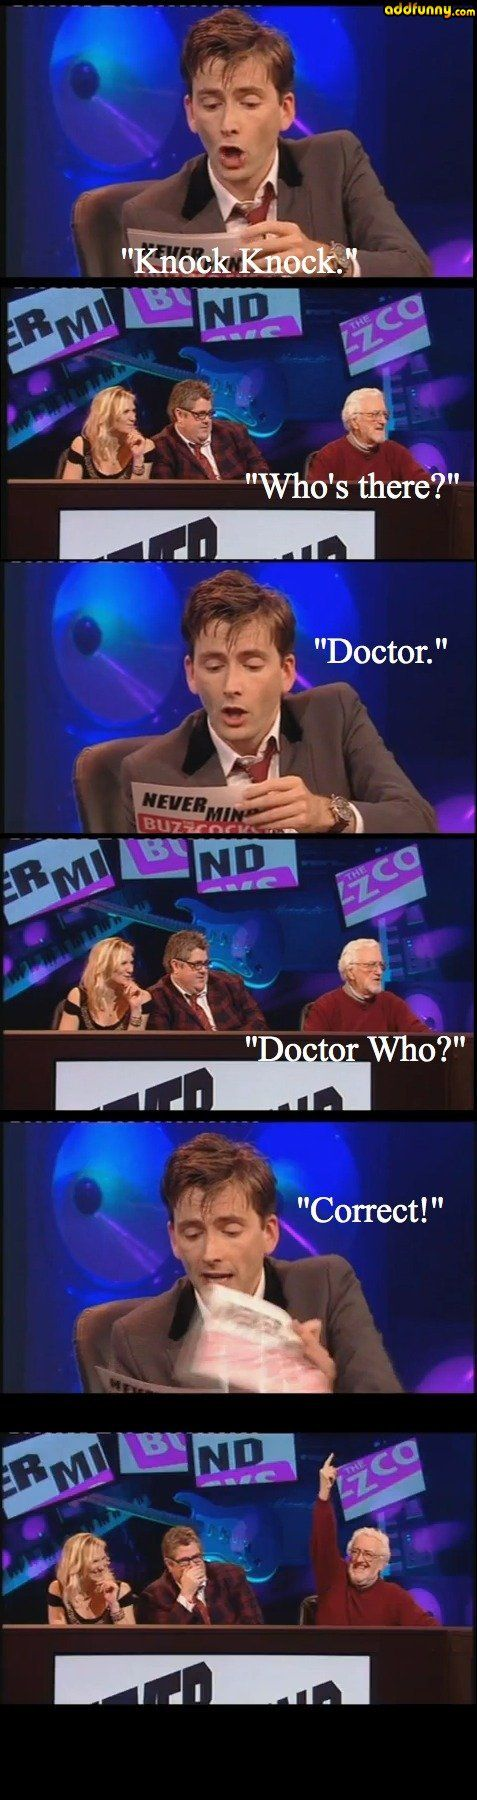 """*This is from a hilarious British TV show David Tenant hosted called """"Never Mind the Buzzcocks"""". (It's A  British slang word btw) You can see the full clip on YouTube by searching either that title, or David Tenant then scrolling through tons of results :D if you're a Dr who or David Tenant fan it's worth the look :) BTW I get new people re-pinning this one pin nearly every day. My notifications panel says 48+ people pinned it :D cool"""